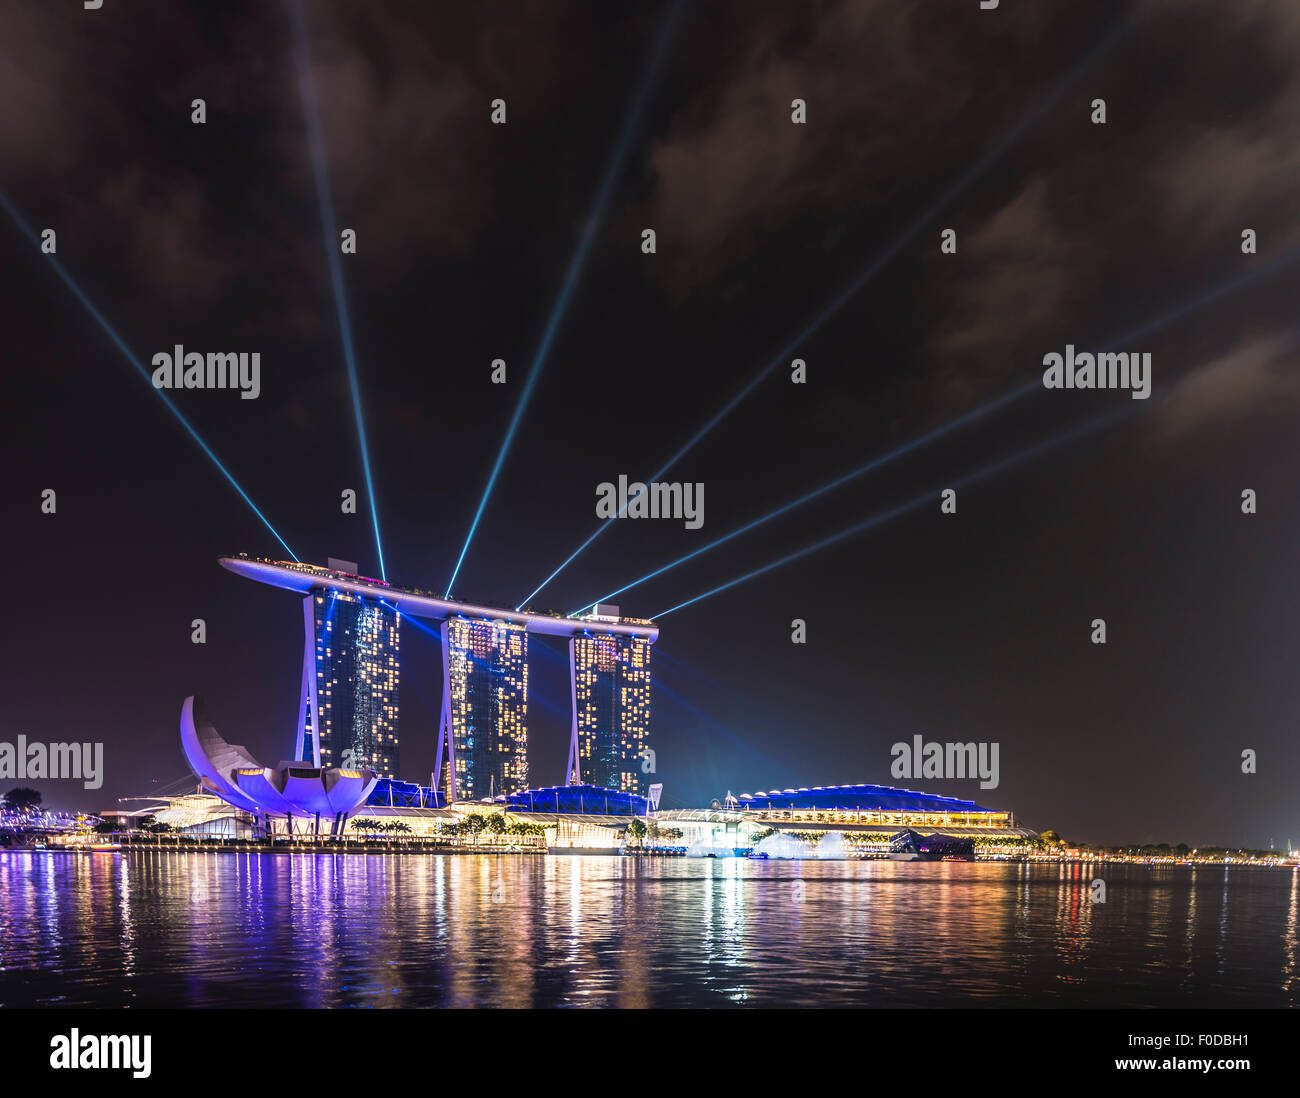 Laser show at the Marina Bay Sands Hotel, Singapore - Stock Image